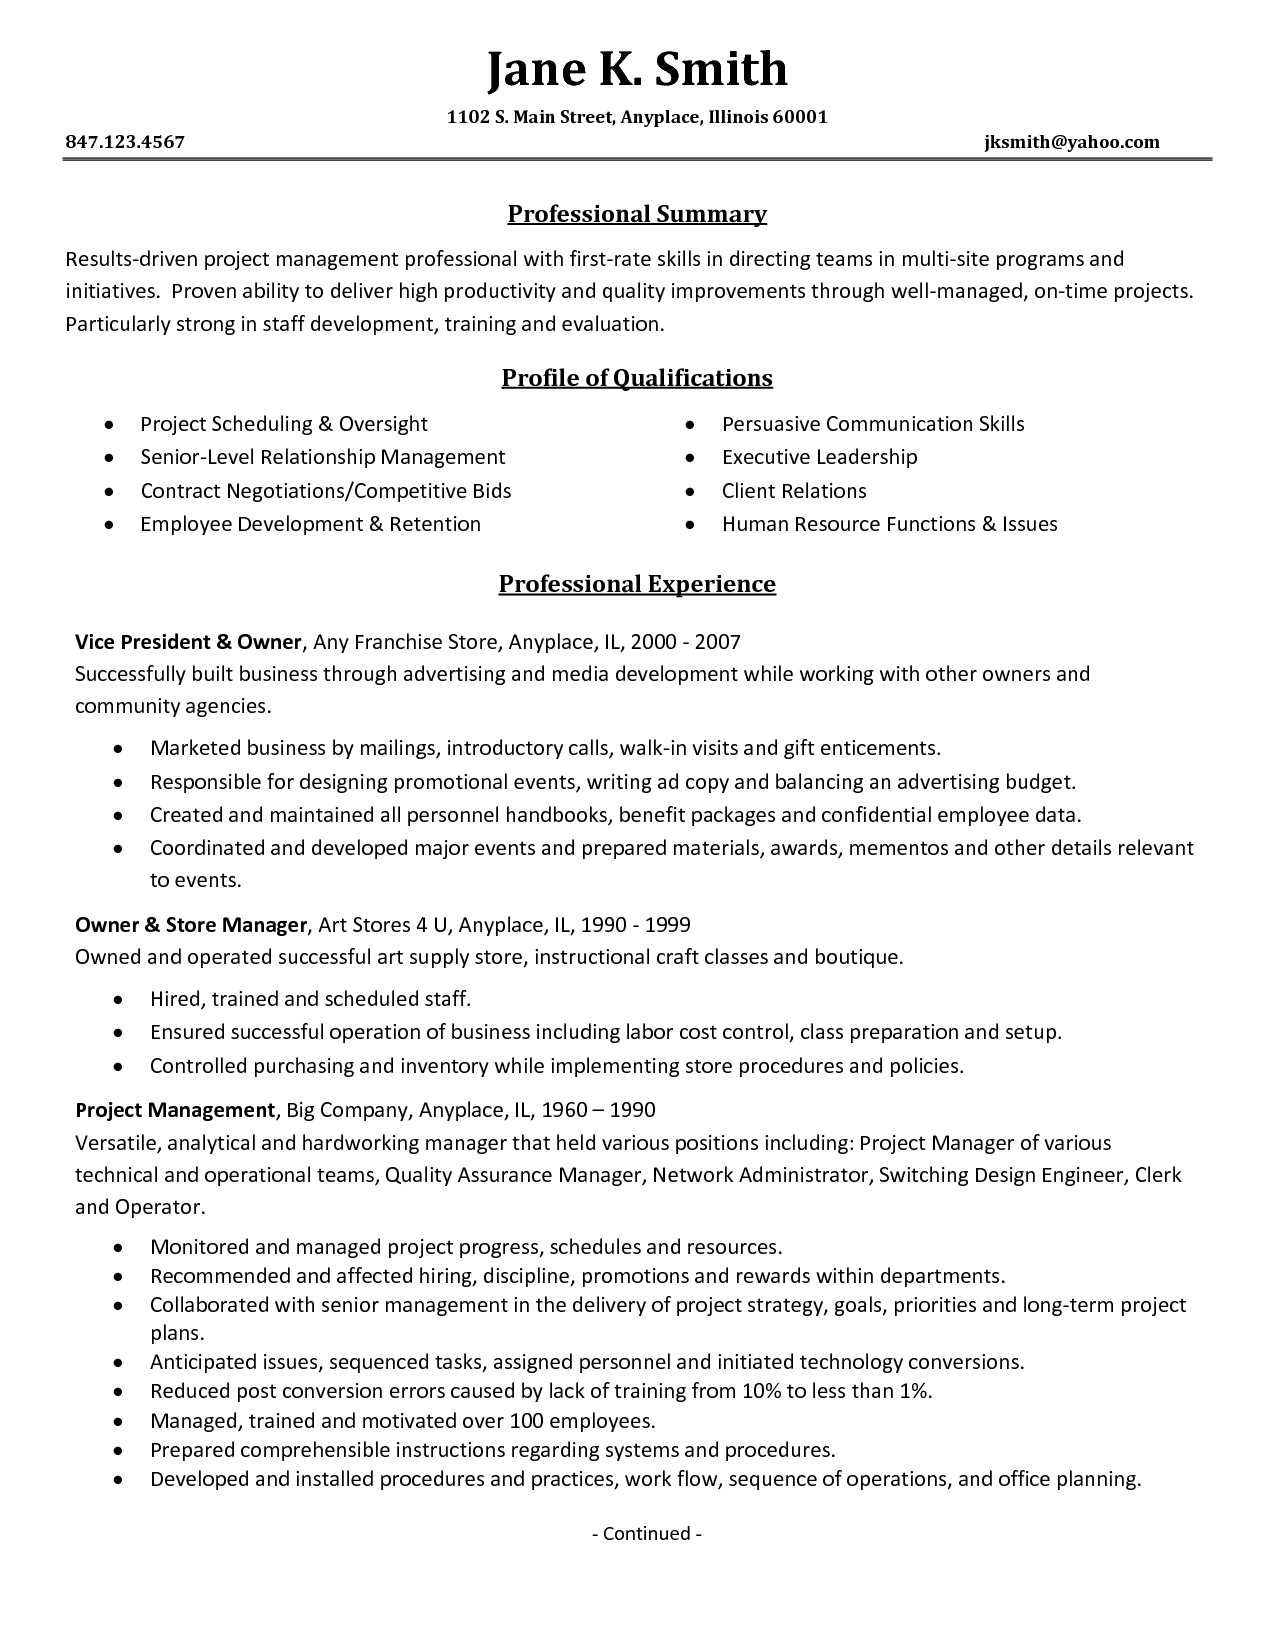 leadership skills resume leadership skills resume template job leadership skills resume leadership skills resume template